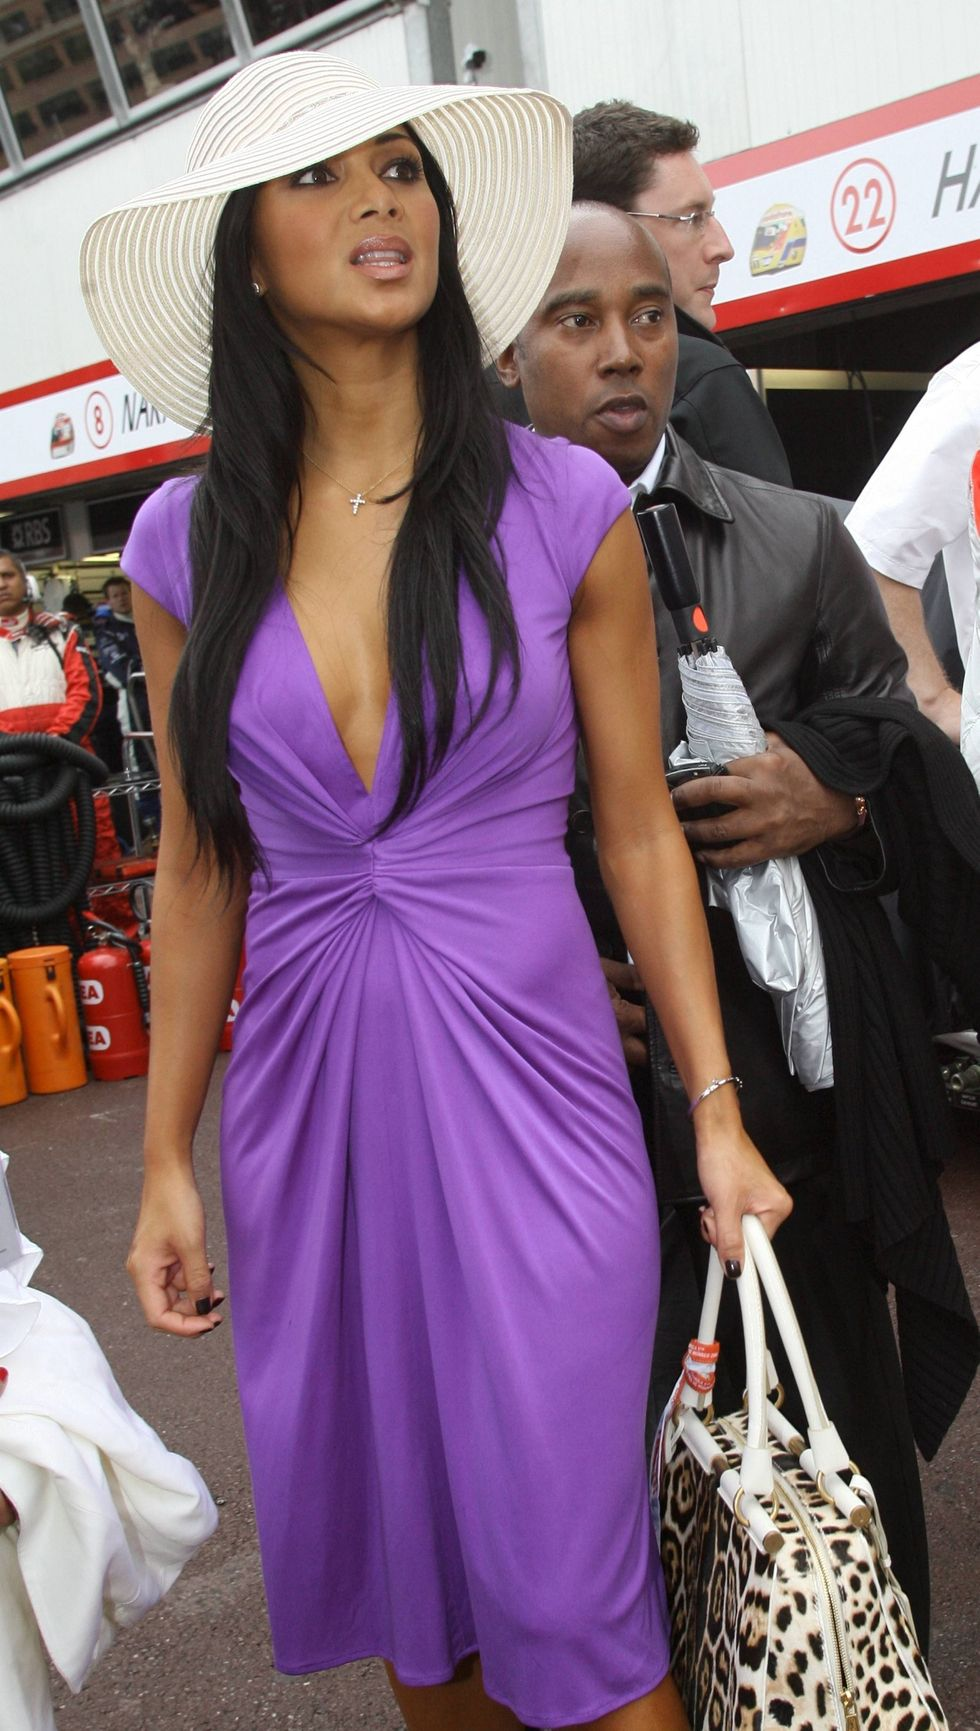 nicole-scherzinger-the-monaco-f1-grand-prix-in-monte-carlo-01